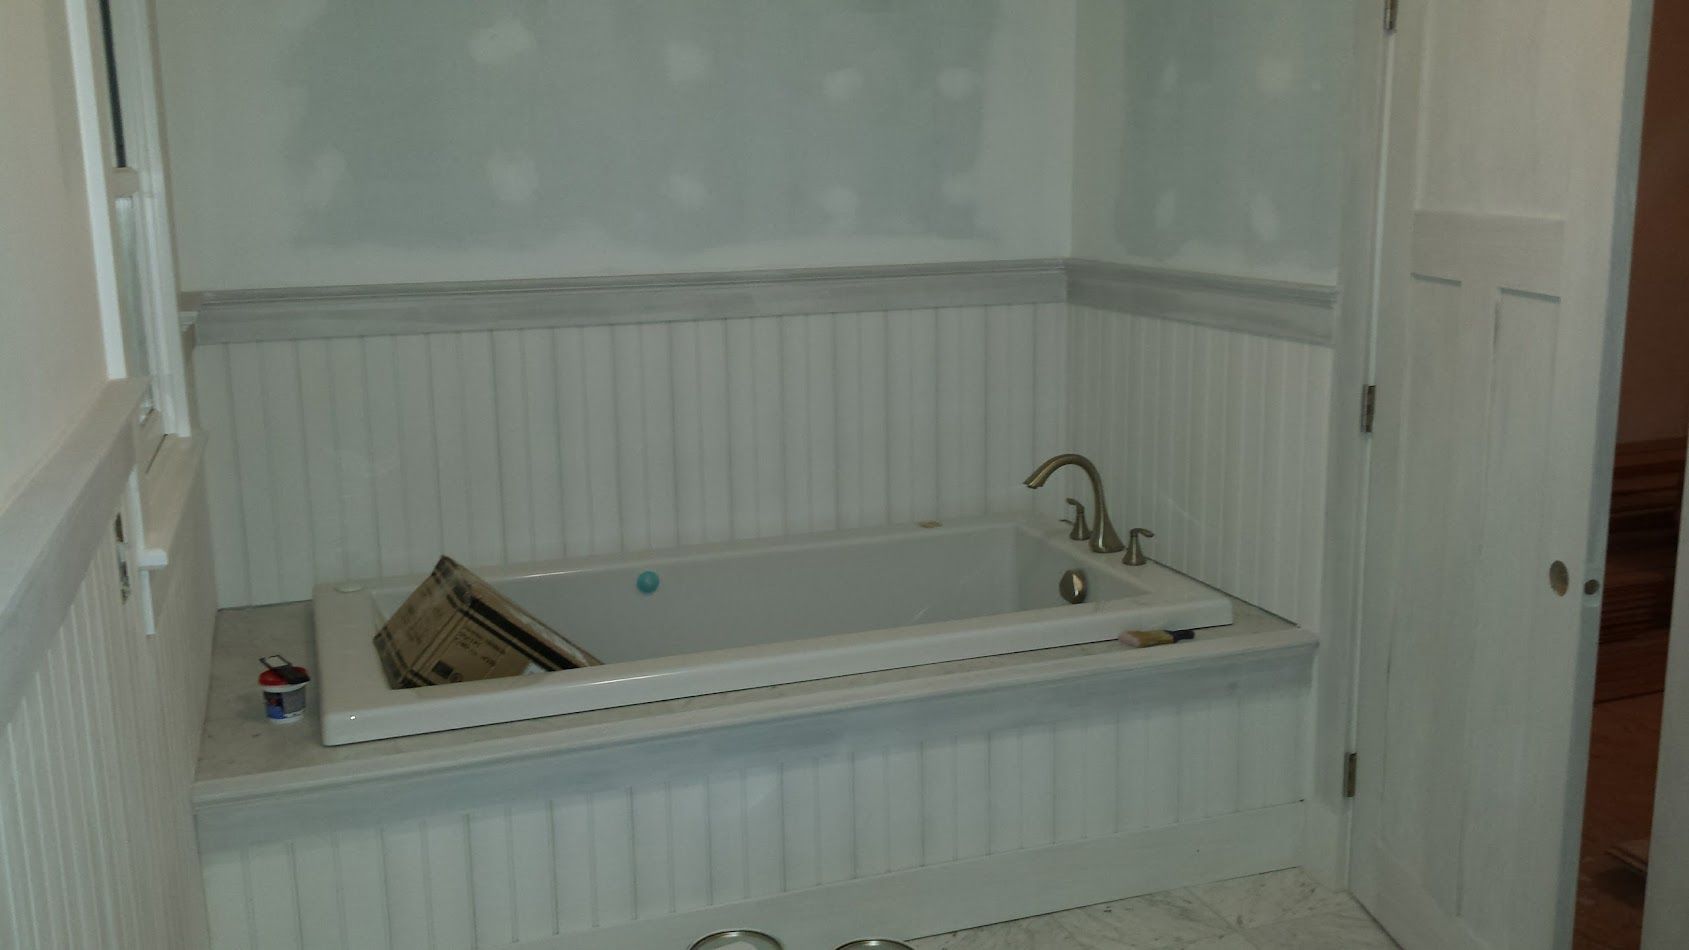 A view of the tub trim finished too! Most of that is removable in case we ever need to get under the tub to the pump.